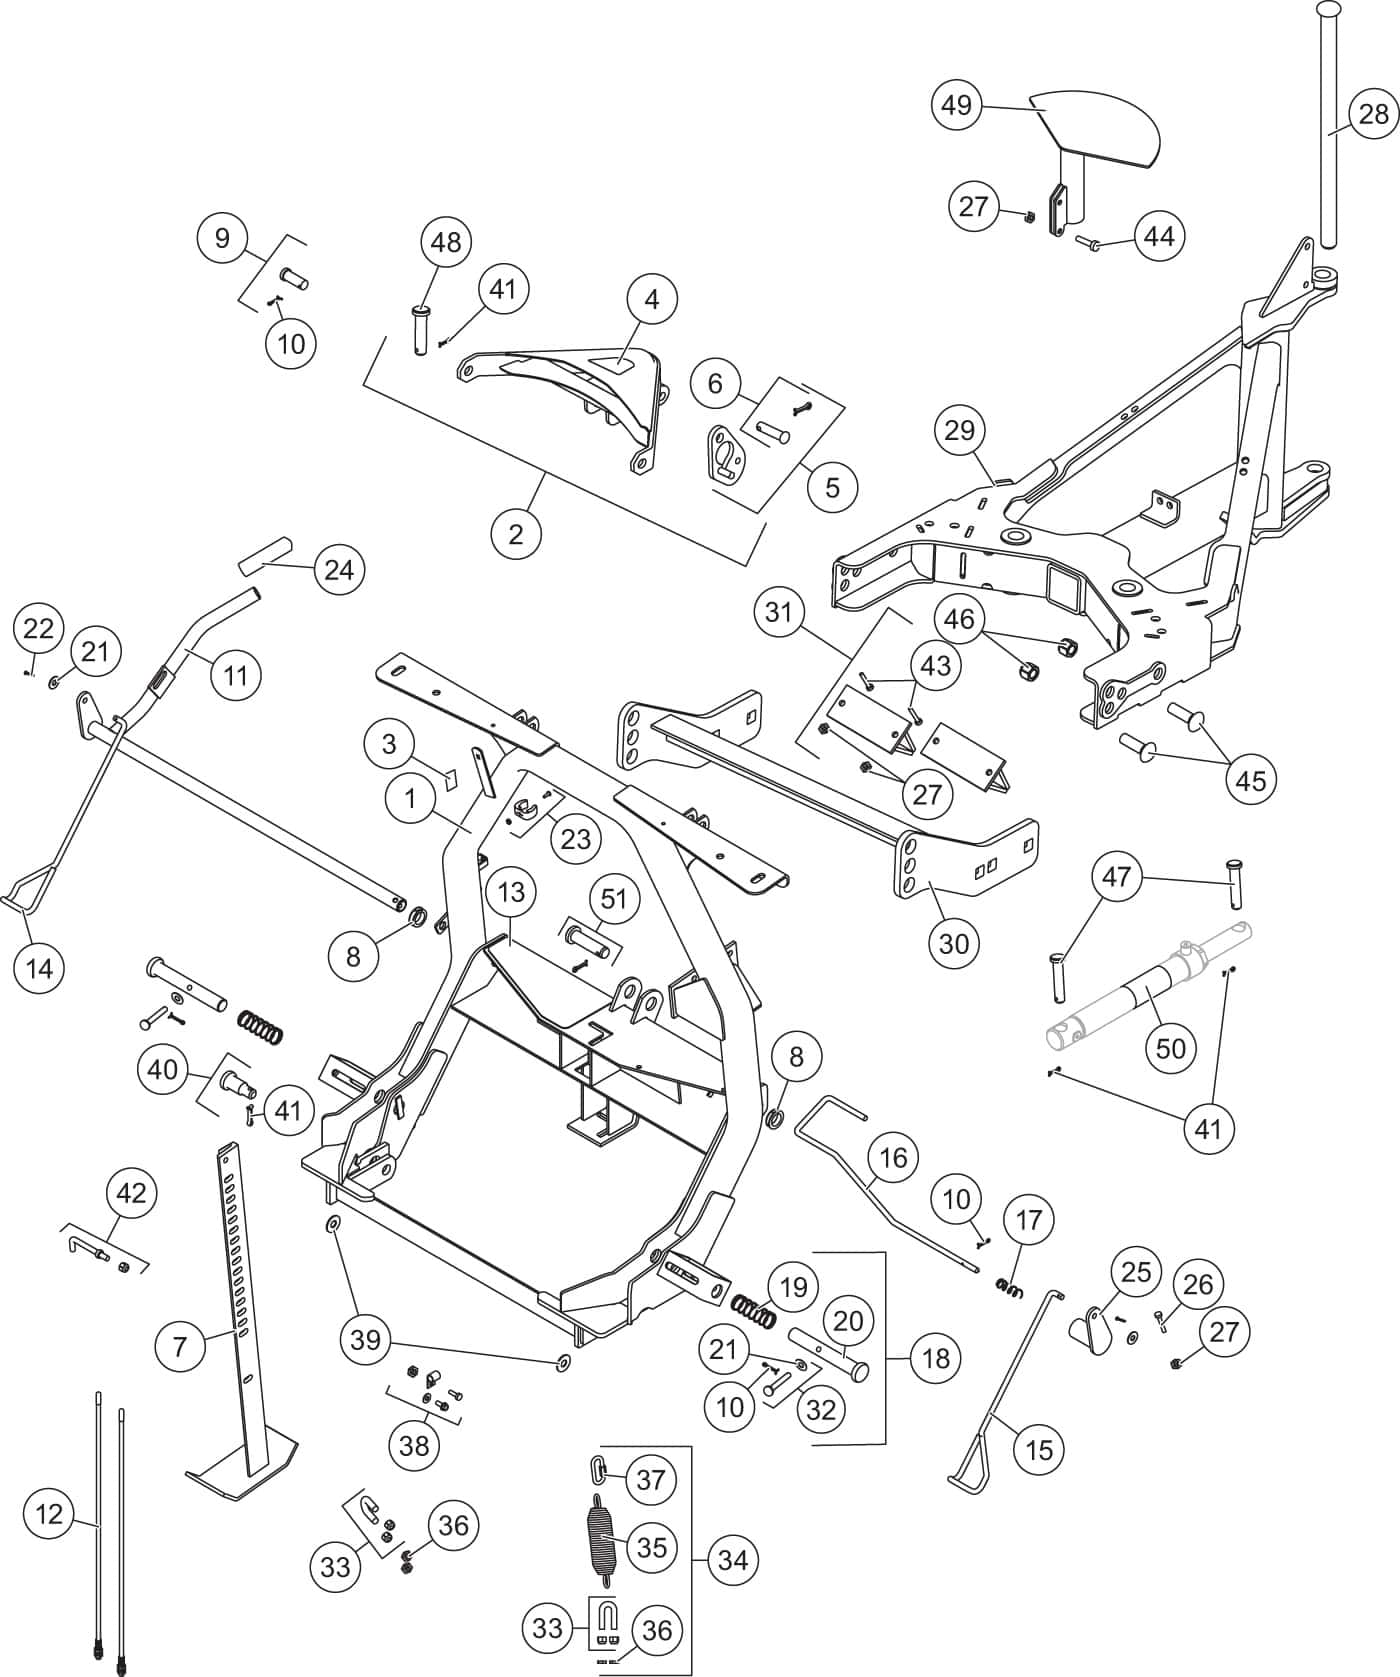 fisher snow plow diagram 1992 honda civic fuse valve parts breakdown bing images